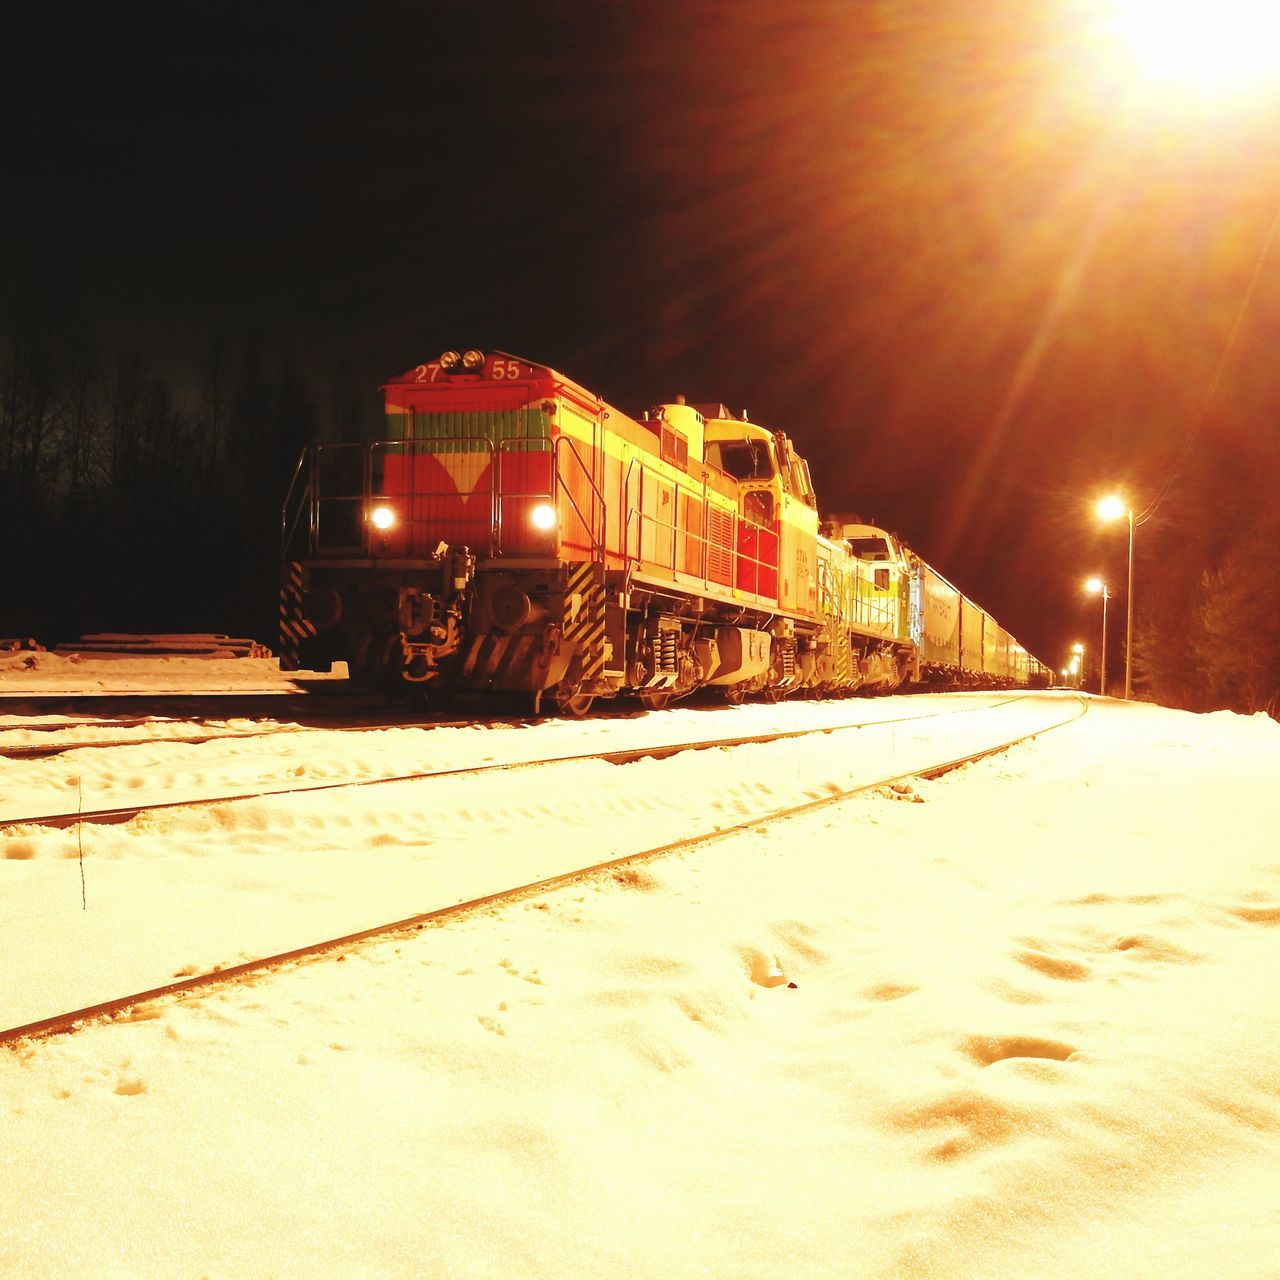 Ready to go home.Winter Snow No People Huawei P9 Leica Nofilternoedit Train - Vehicle Night Finland EyEmNewHere